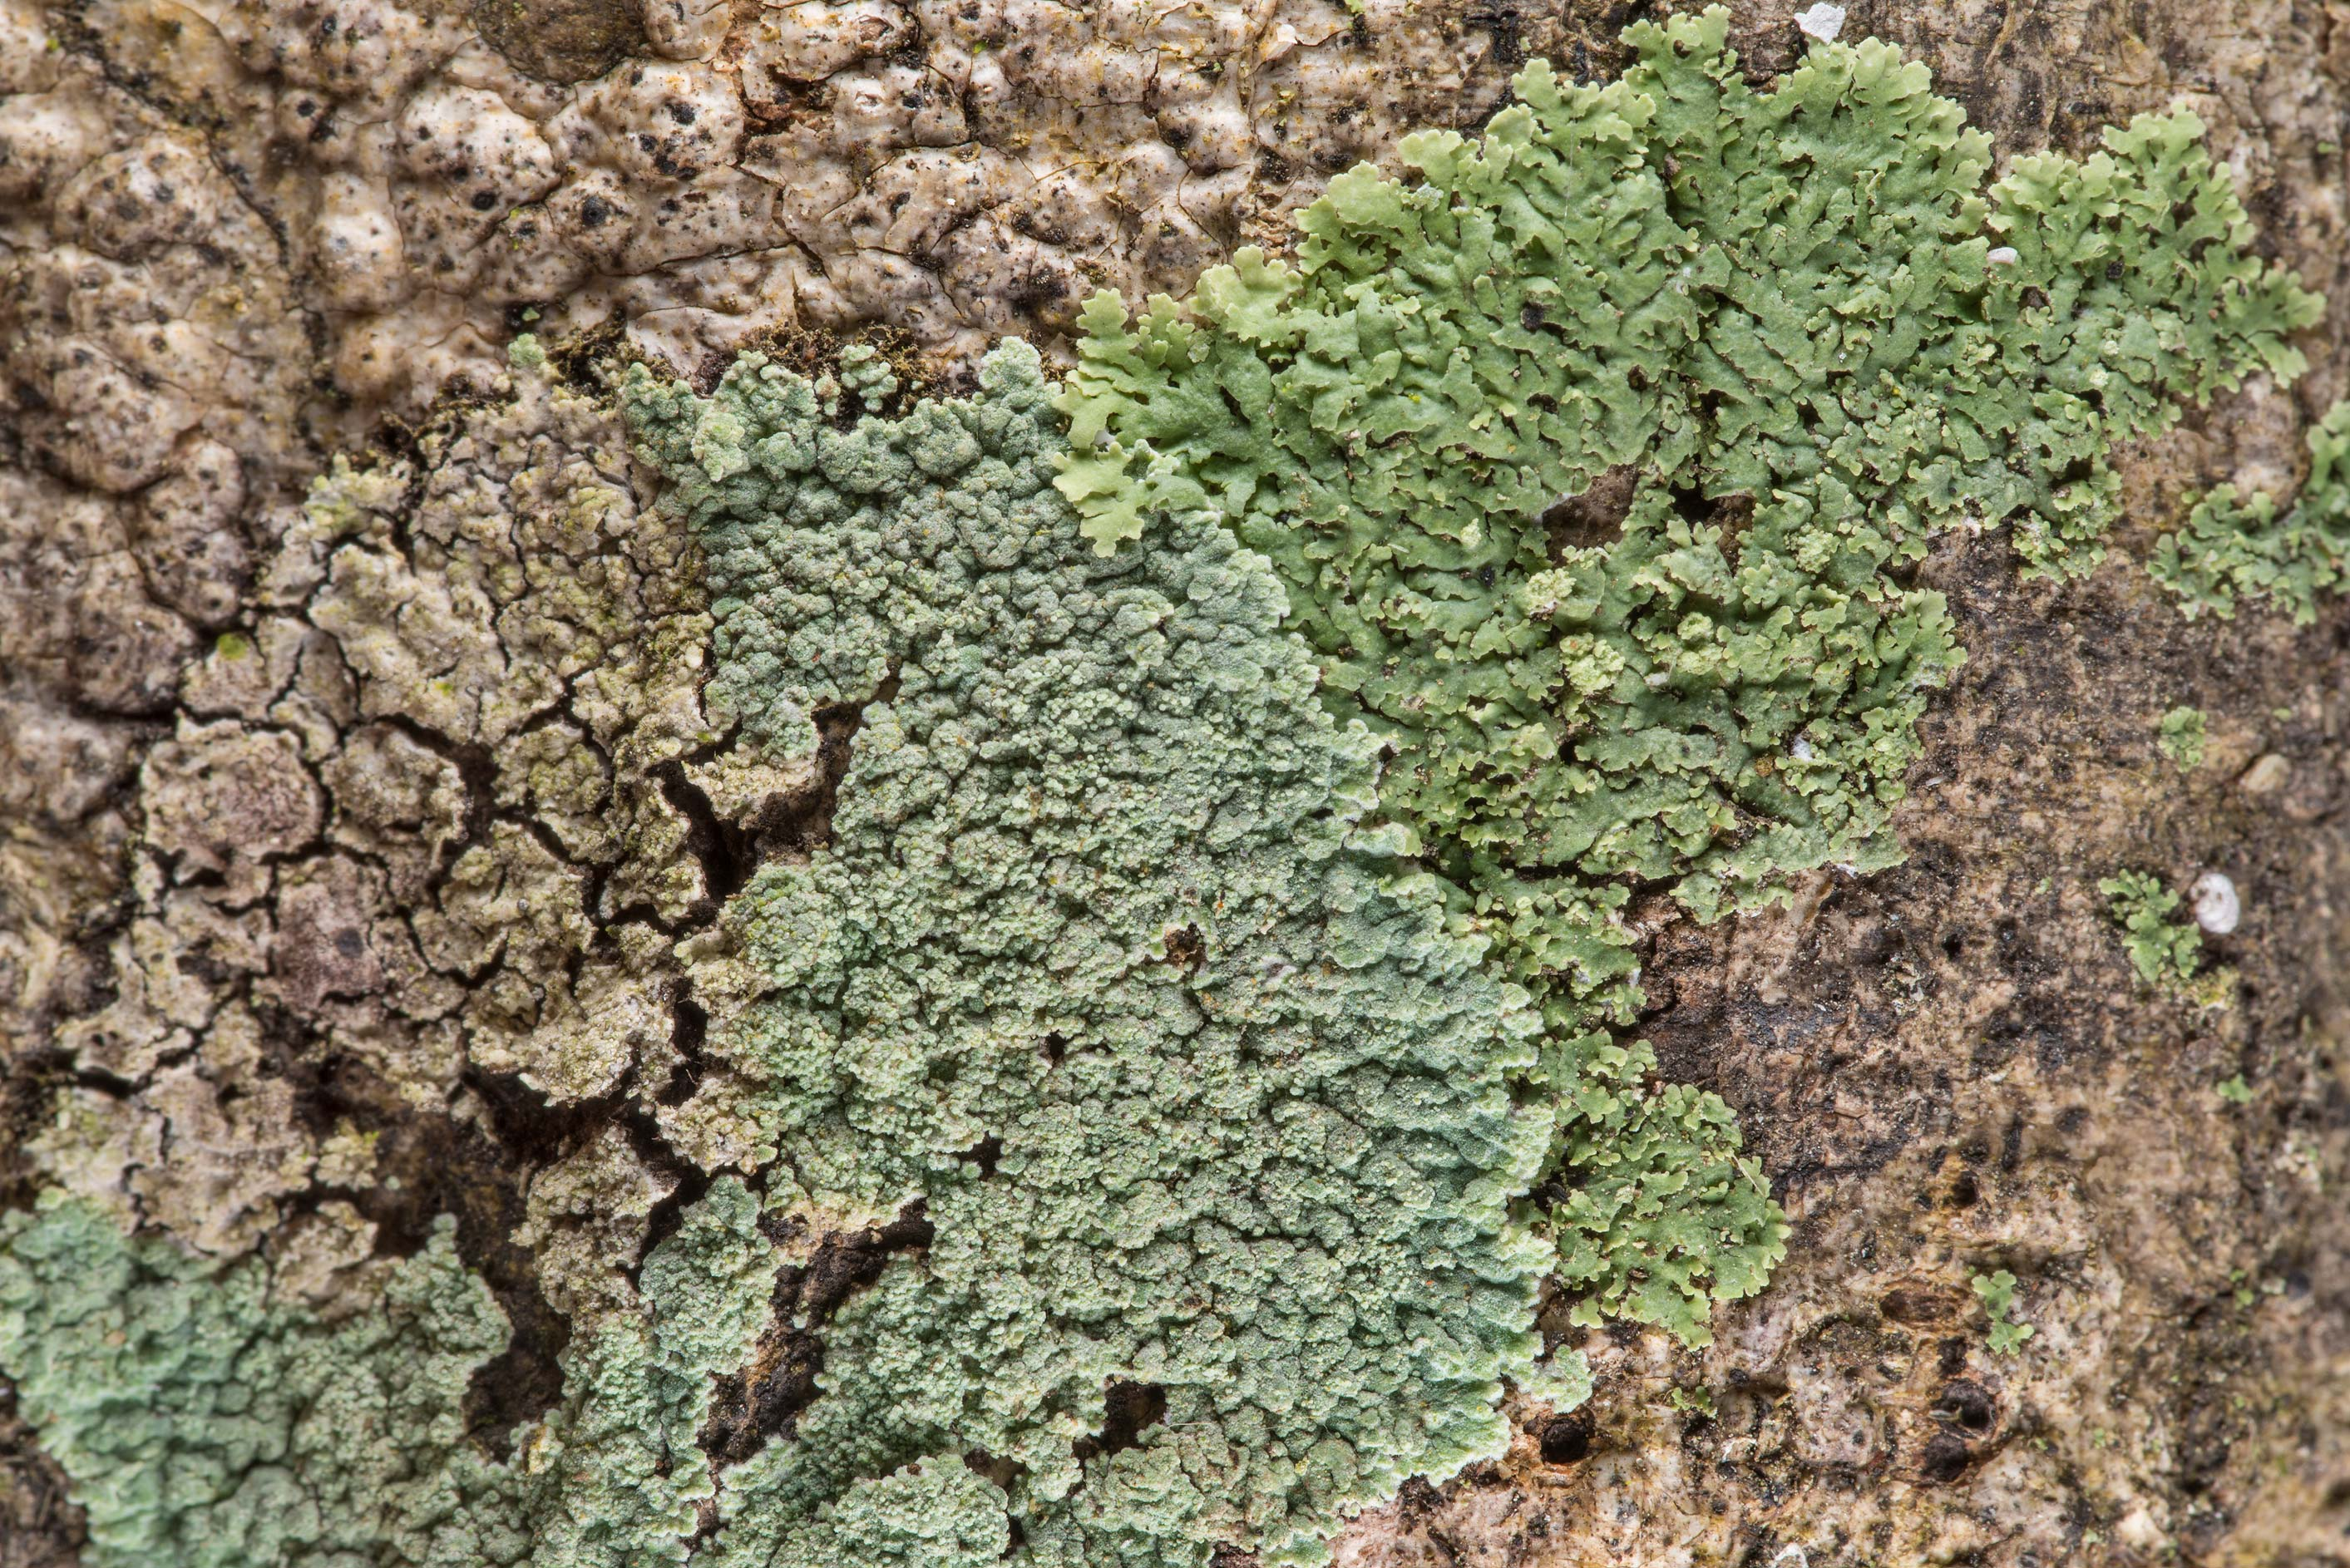 Lobed cotton lichen (Crocynia pyxinoides) and a...National Forest. Shepherd, Texas